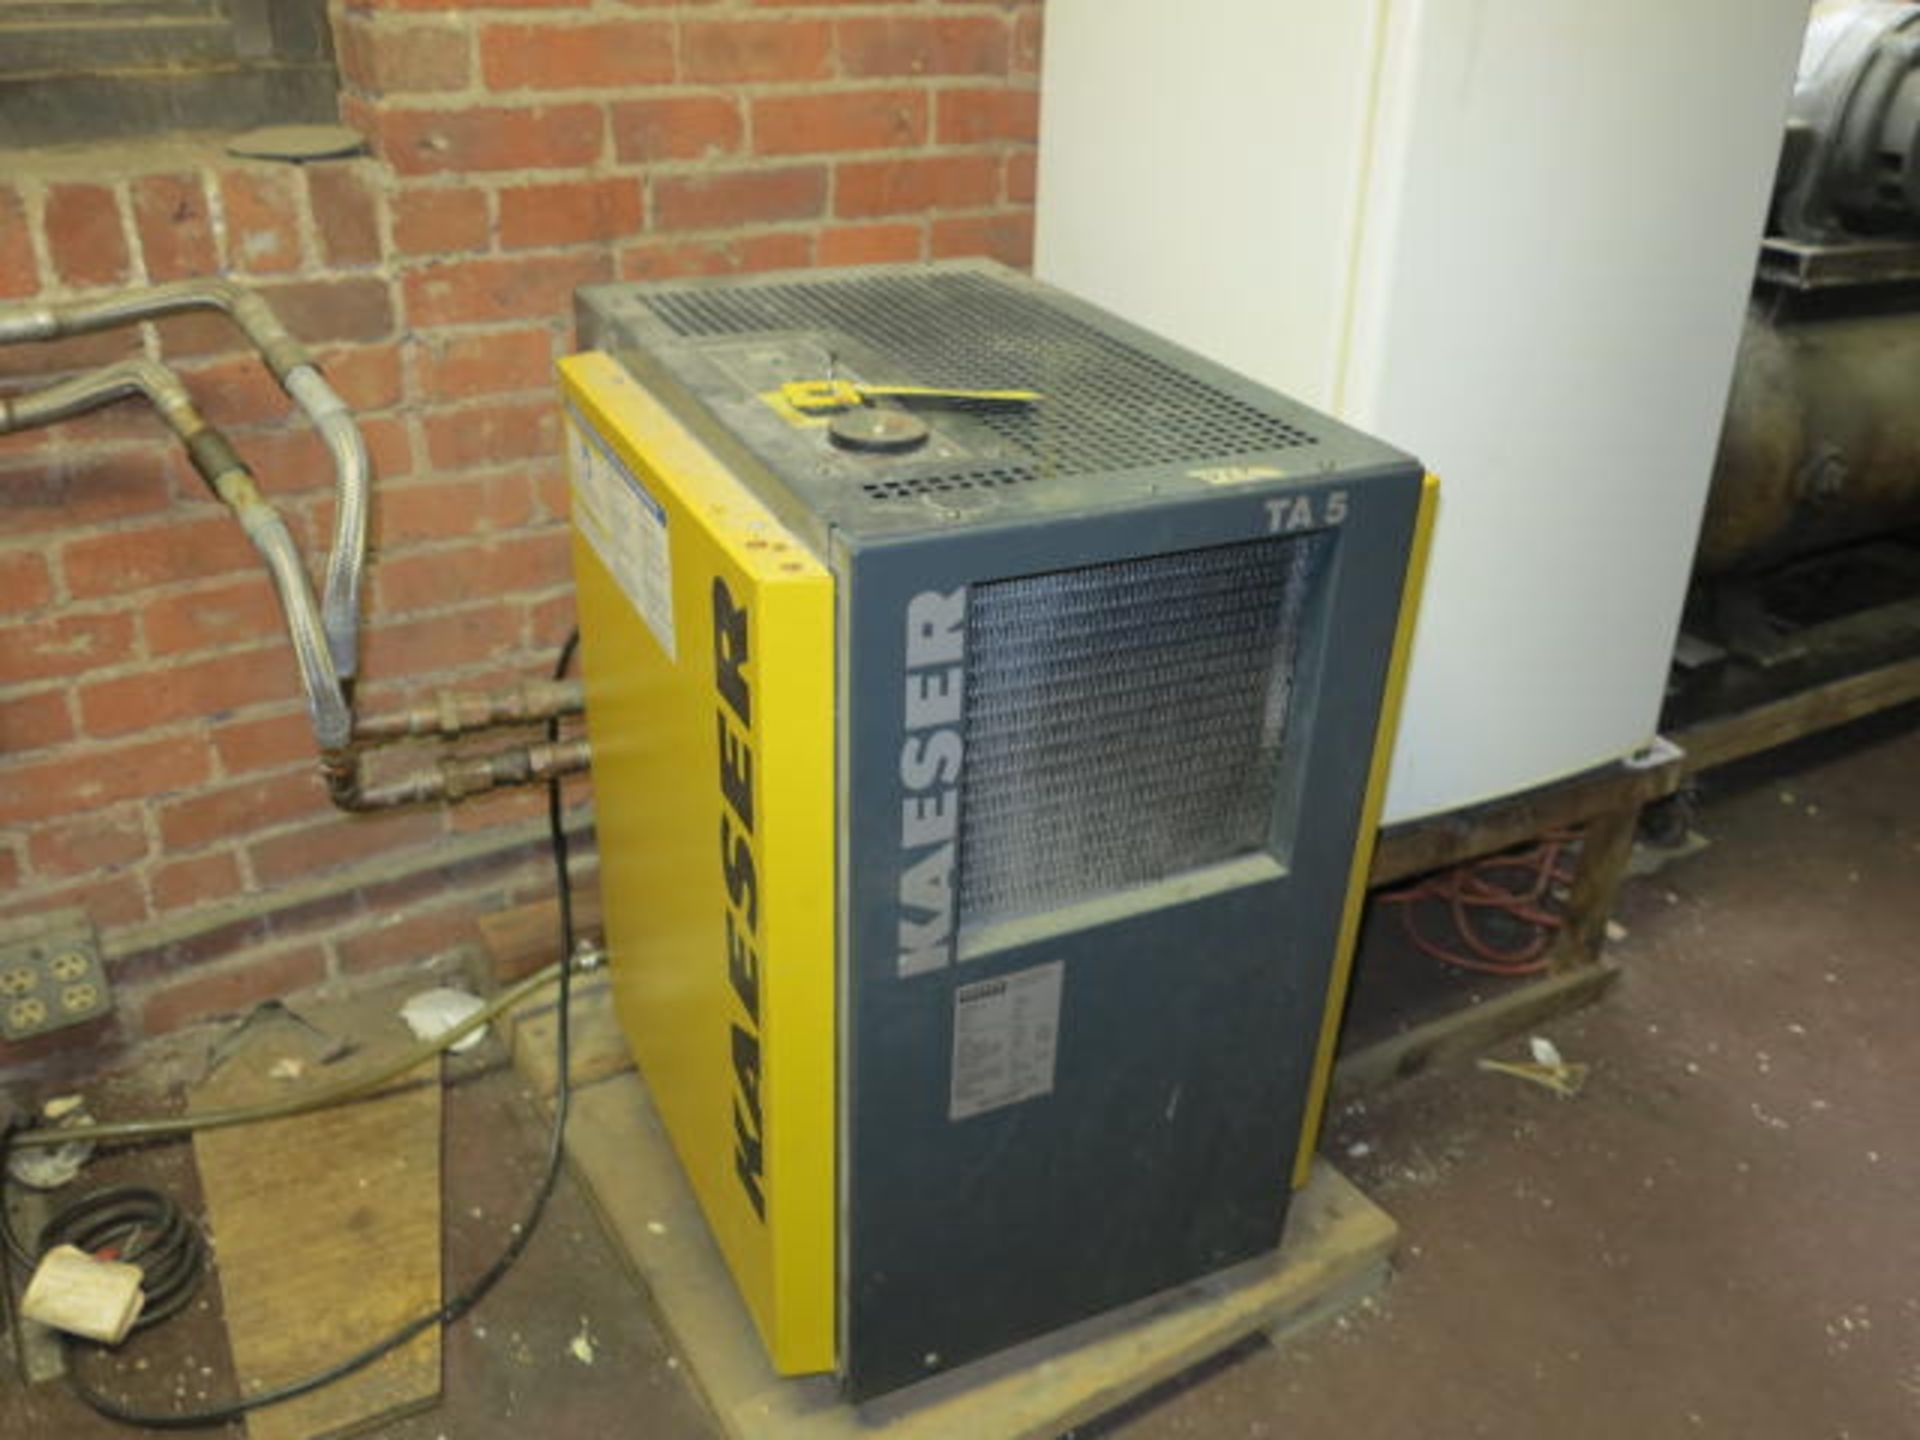 Lot 339 - 2012 Kaiser TA5 Chiller Dryer, S/N 1002